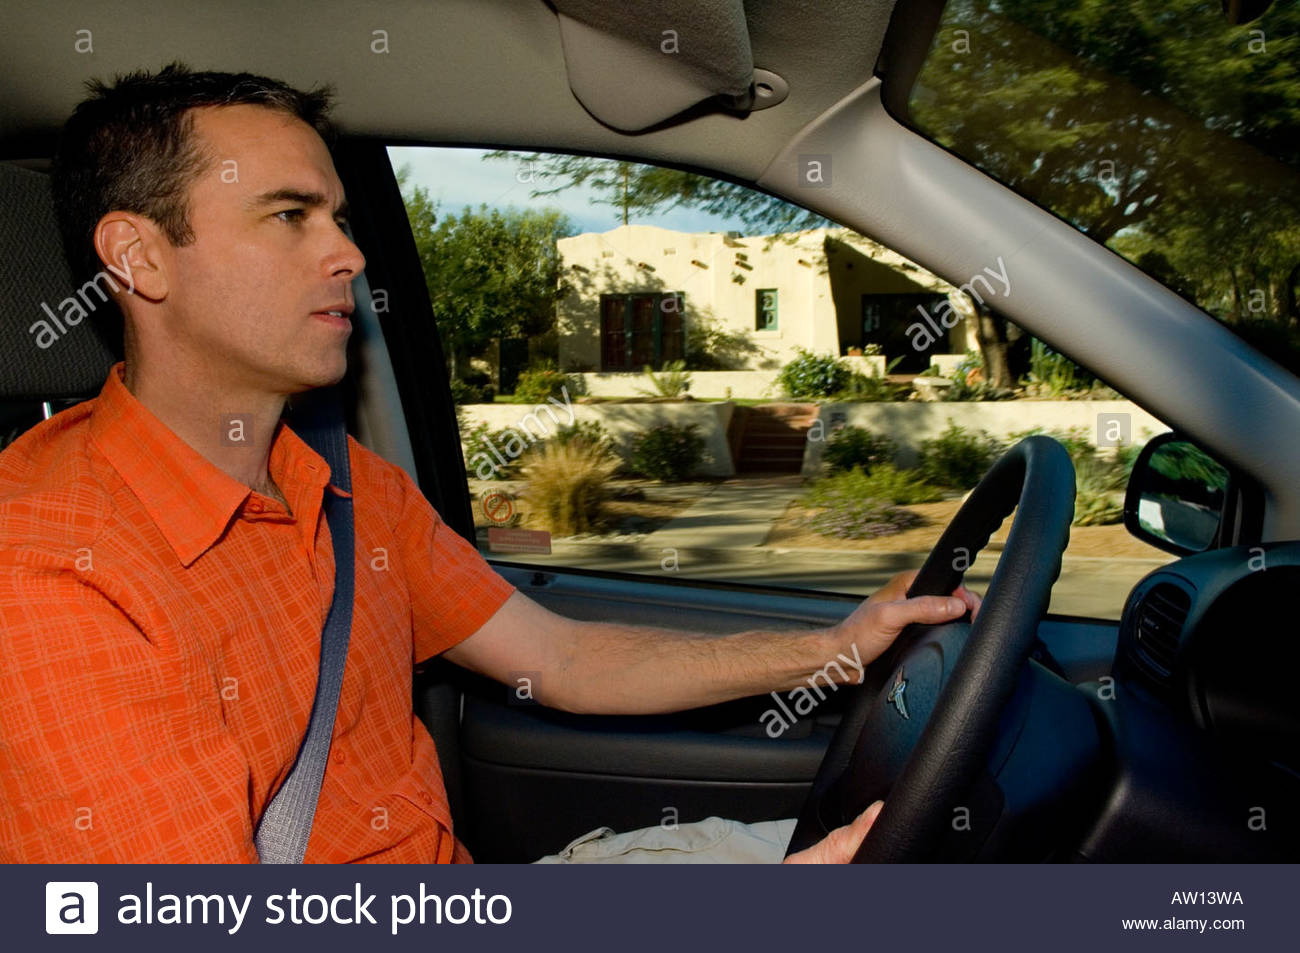 35 to 45 year old male man driving 2007 Chrysler, Town and Country, Minivan through Tucson residential  neighborhoods - Stock Image